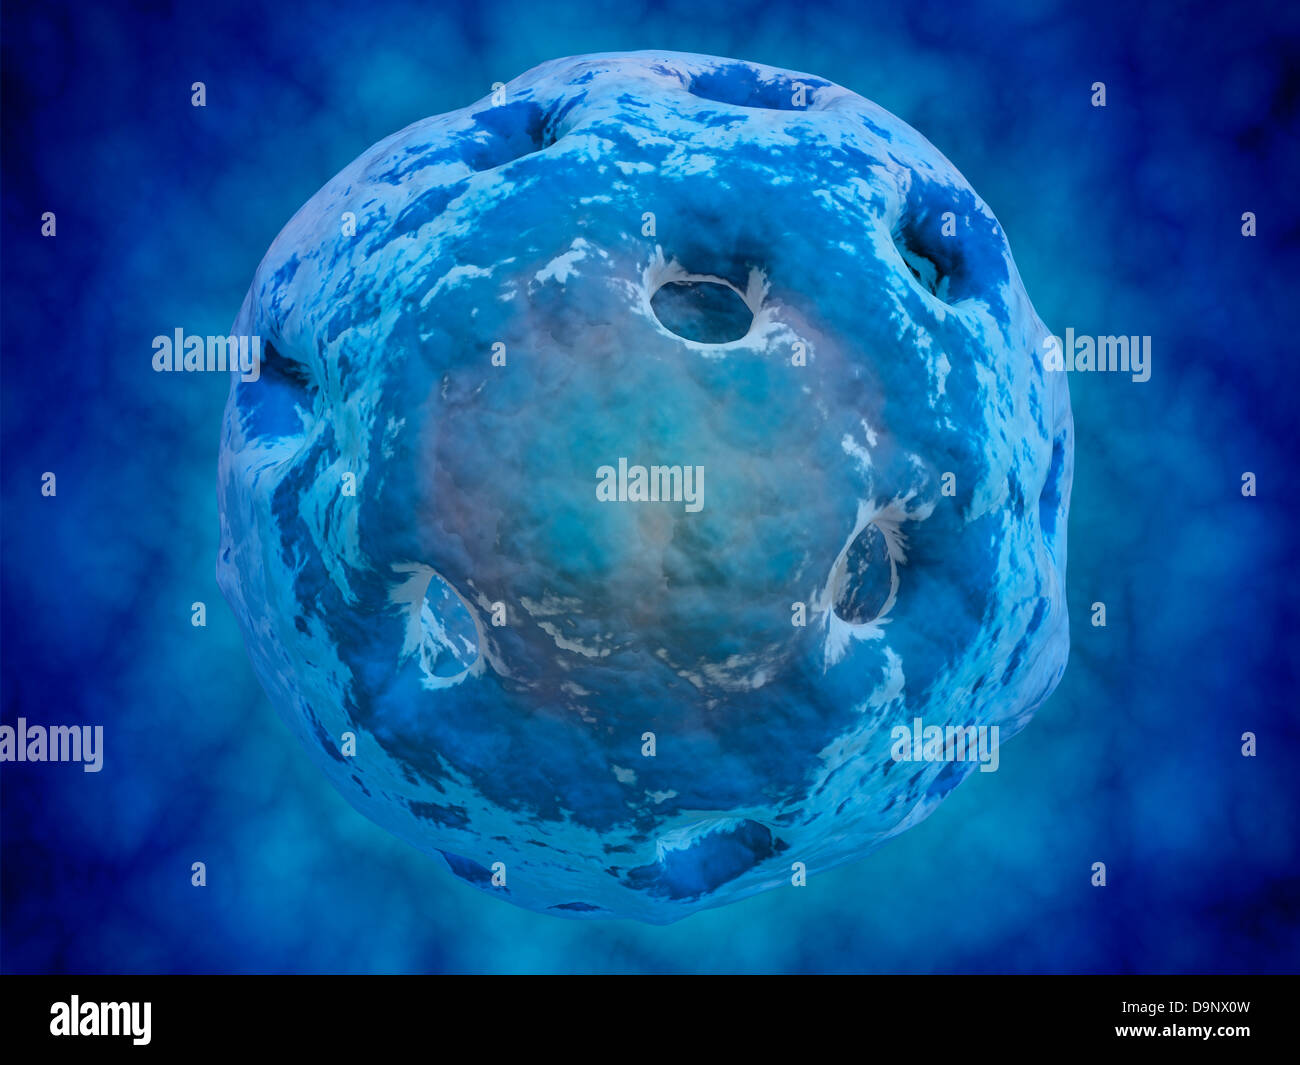 Conceptual image of cell nucleus. - Stock Image